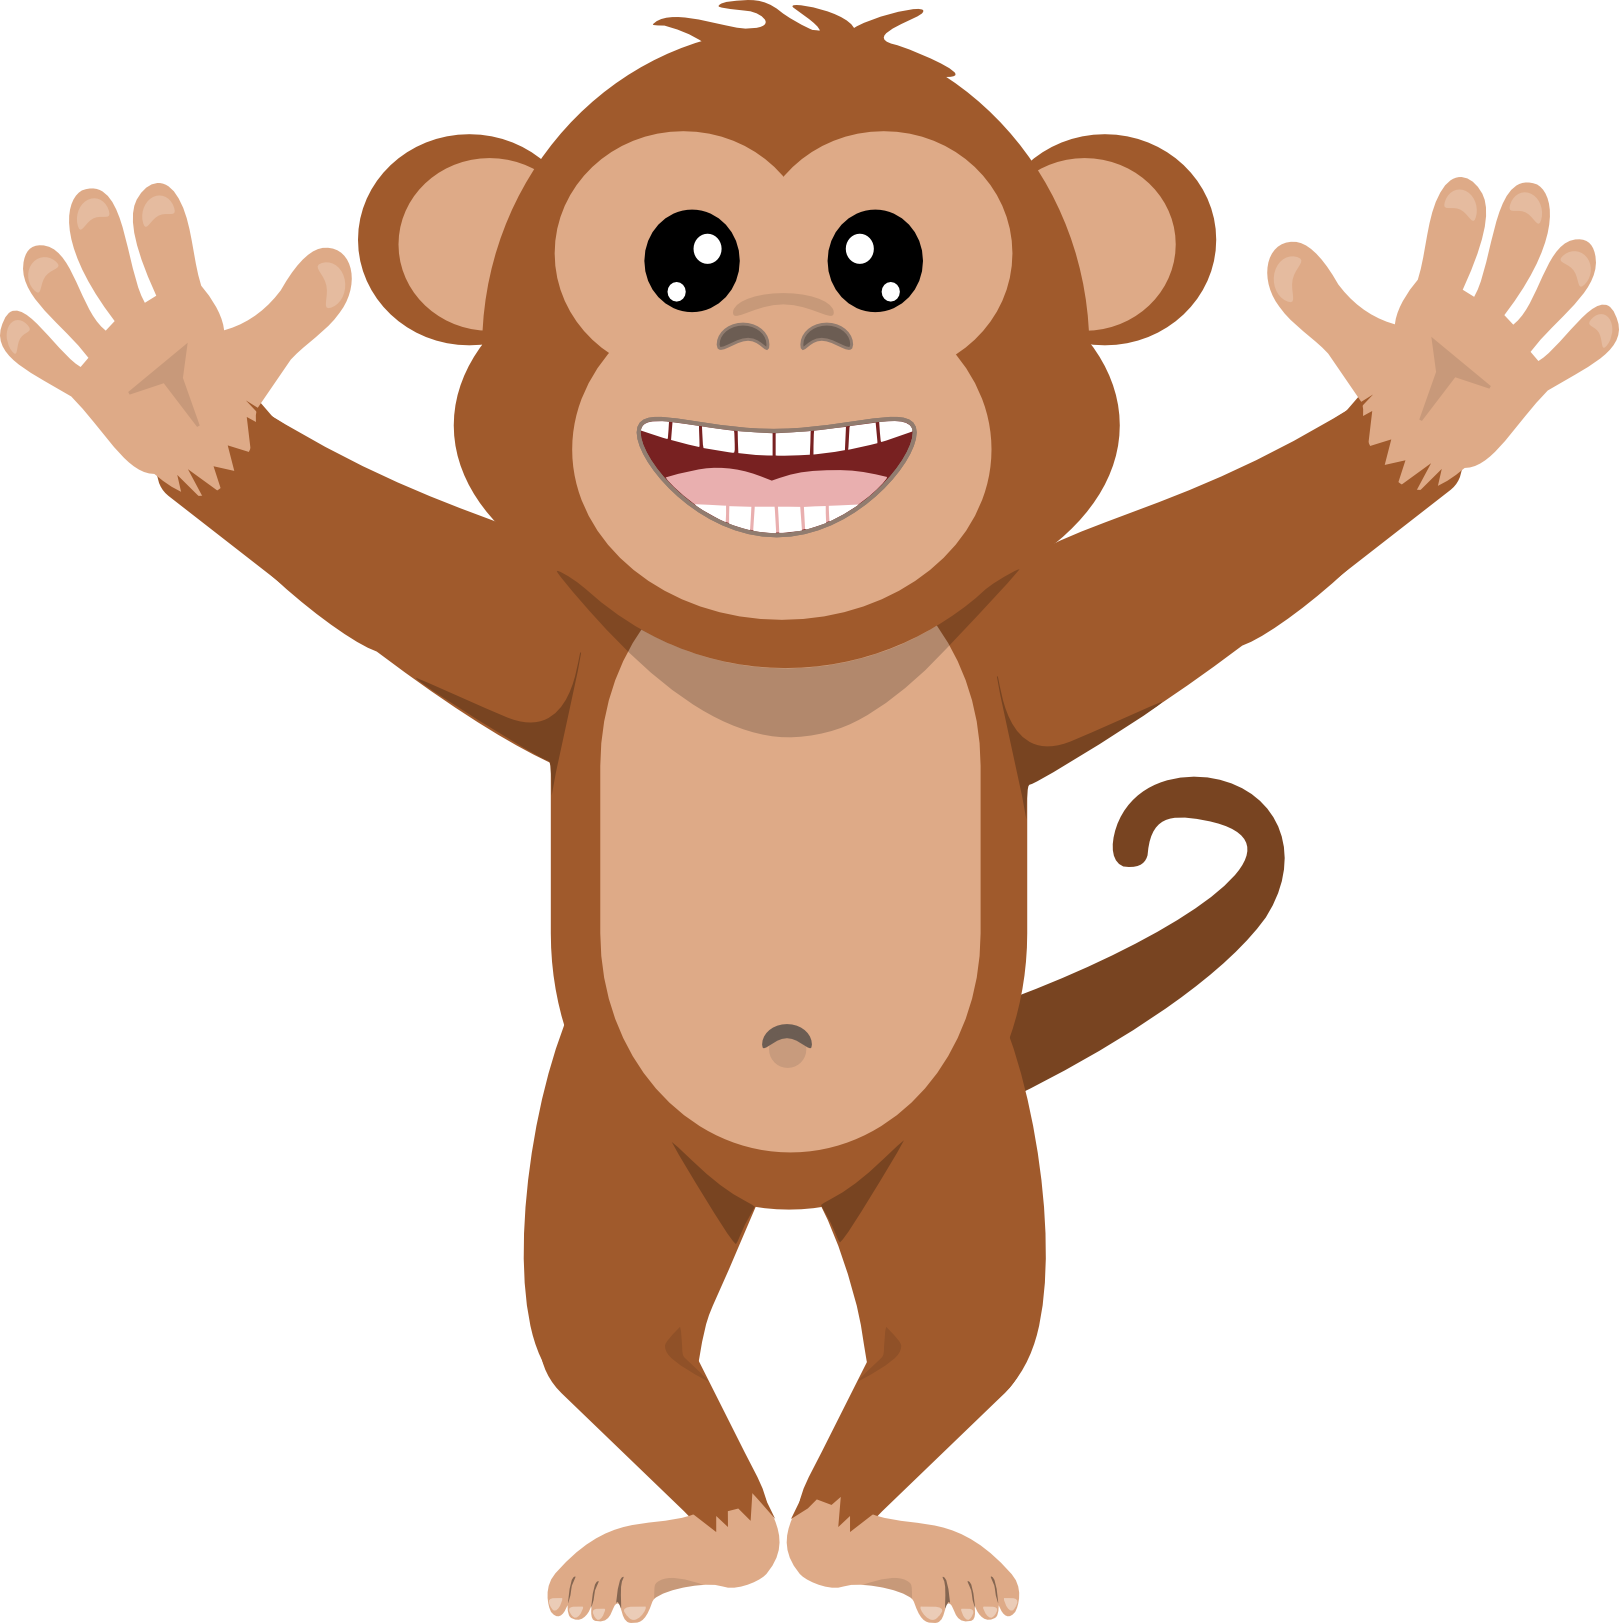 monkey clipart png 5 clipart station rh clipartstation com printable monkey clipart monkey clipart free